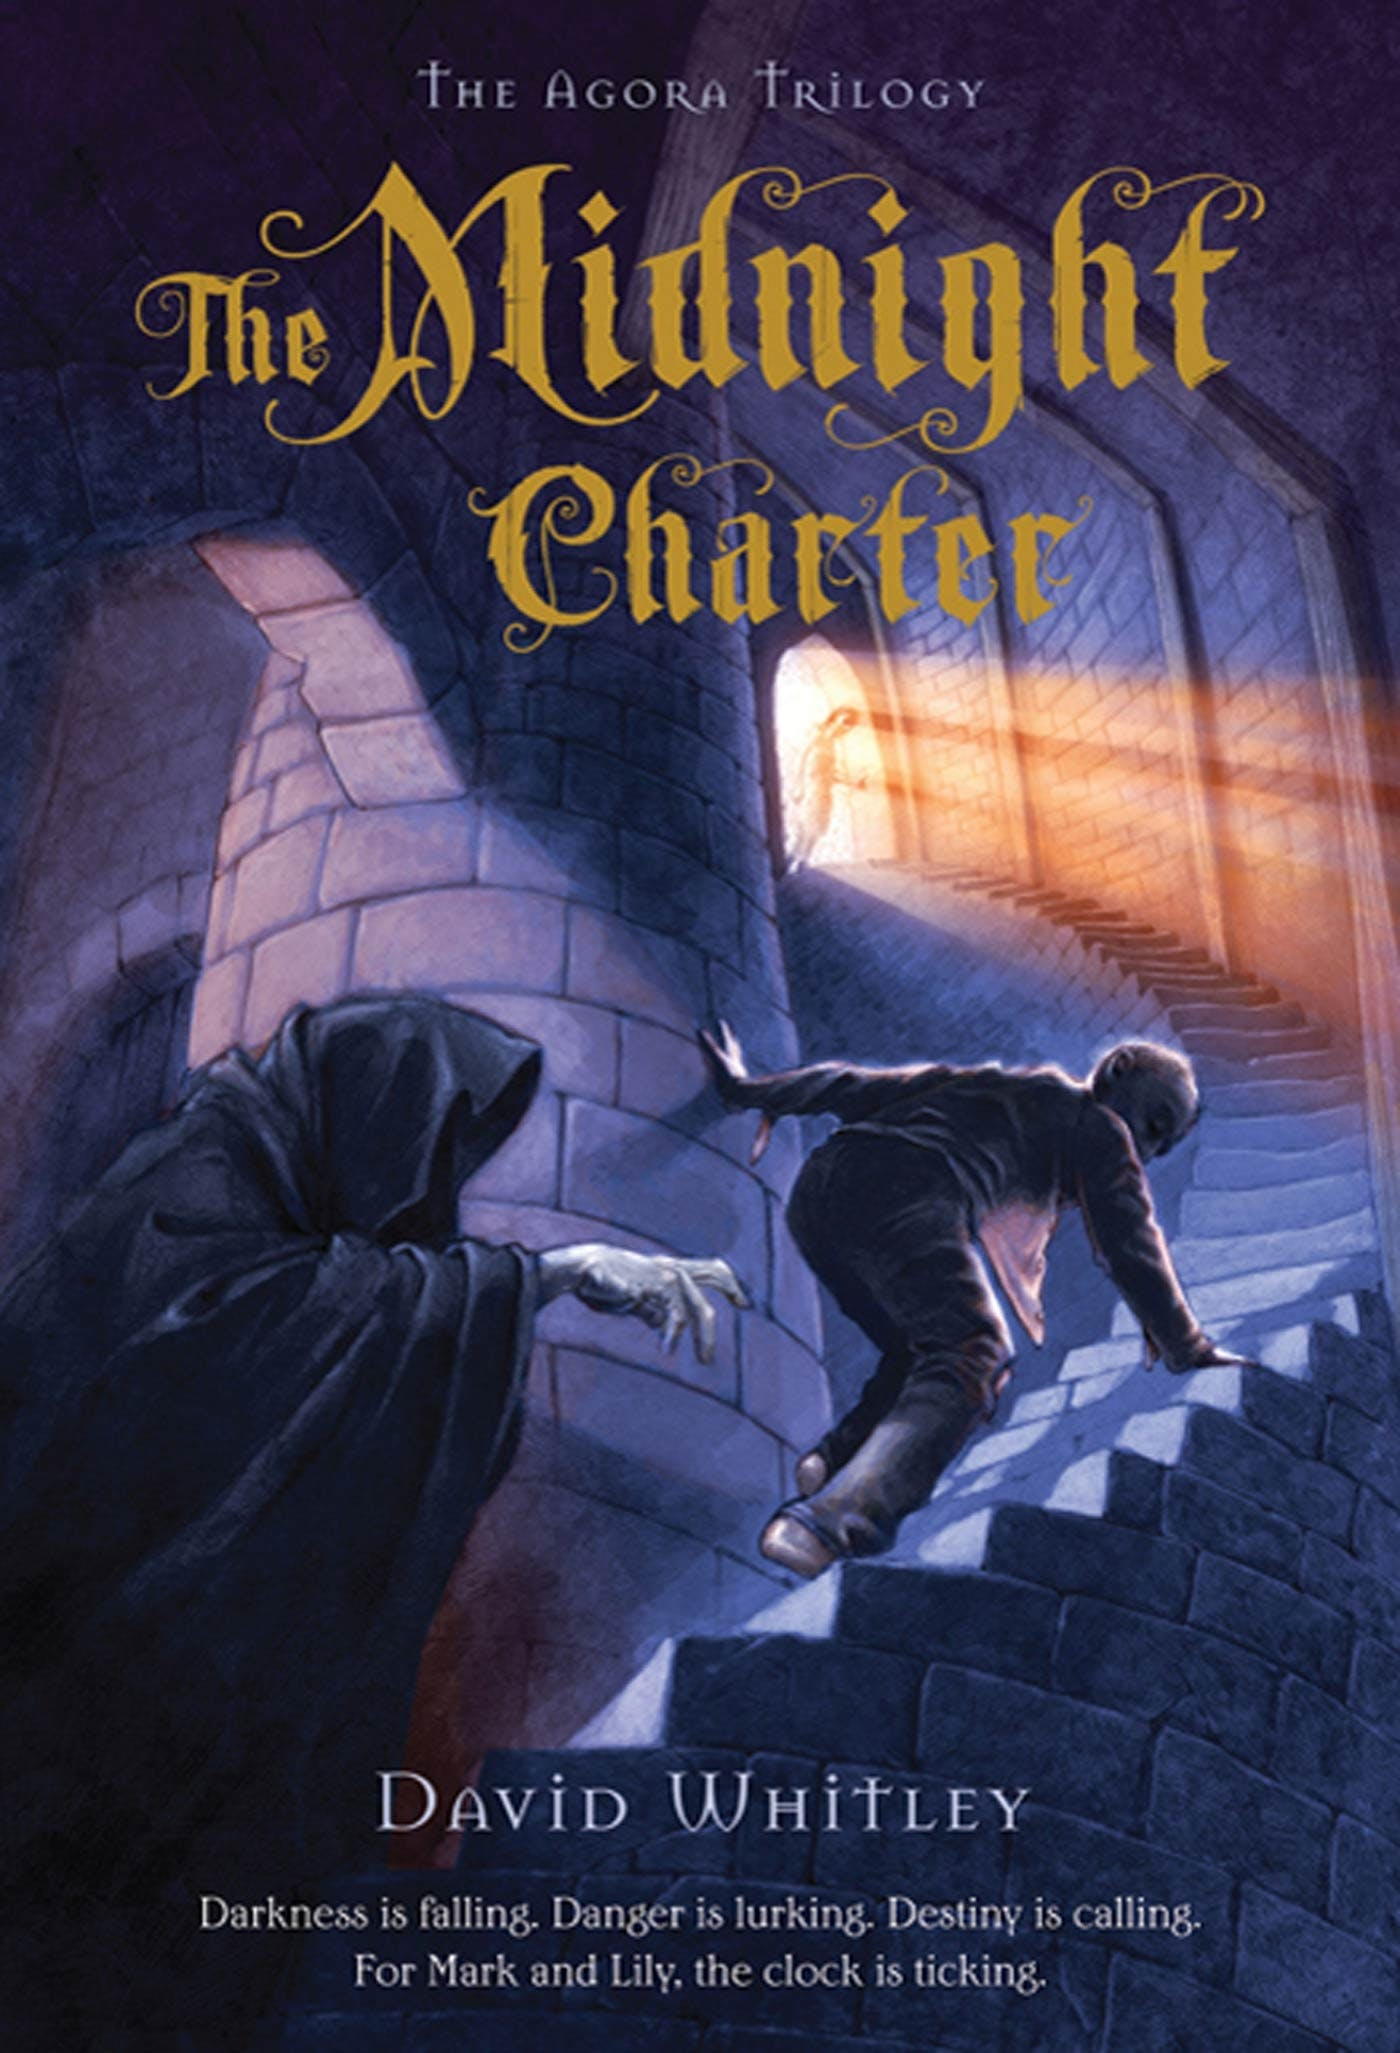 Image of The Midnight Charter